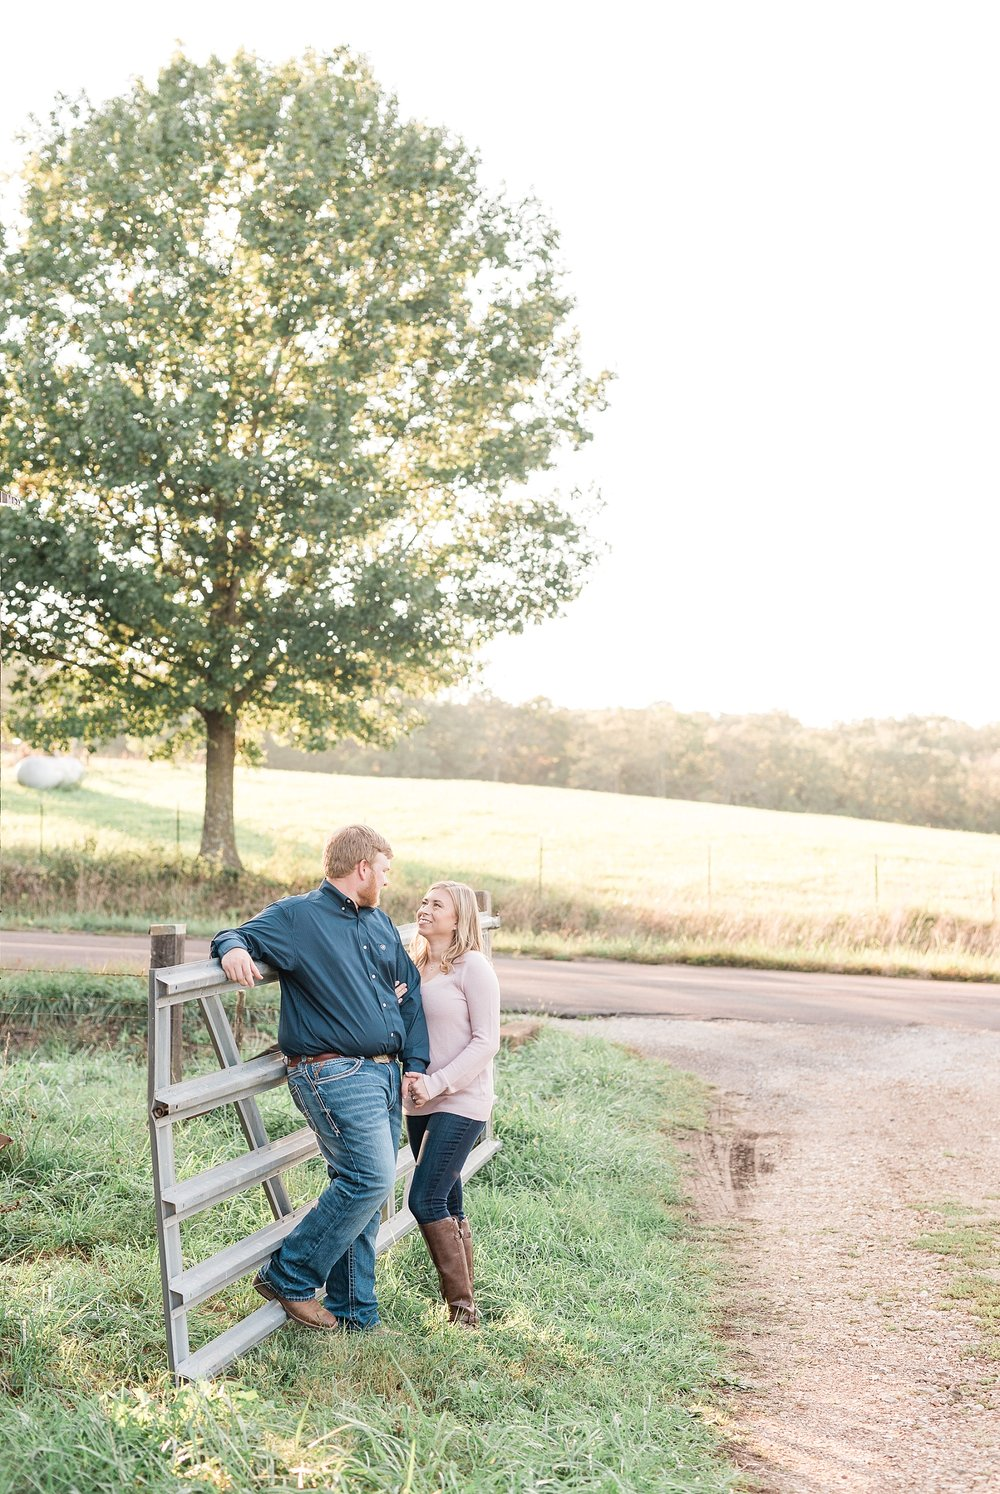 Autumn Golden Sunset Engagement Session on Farm in Missouri by Kelsi Kliethermes Photography_0007.jpg